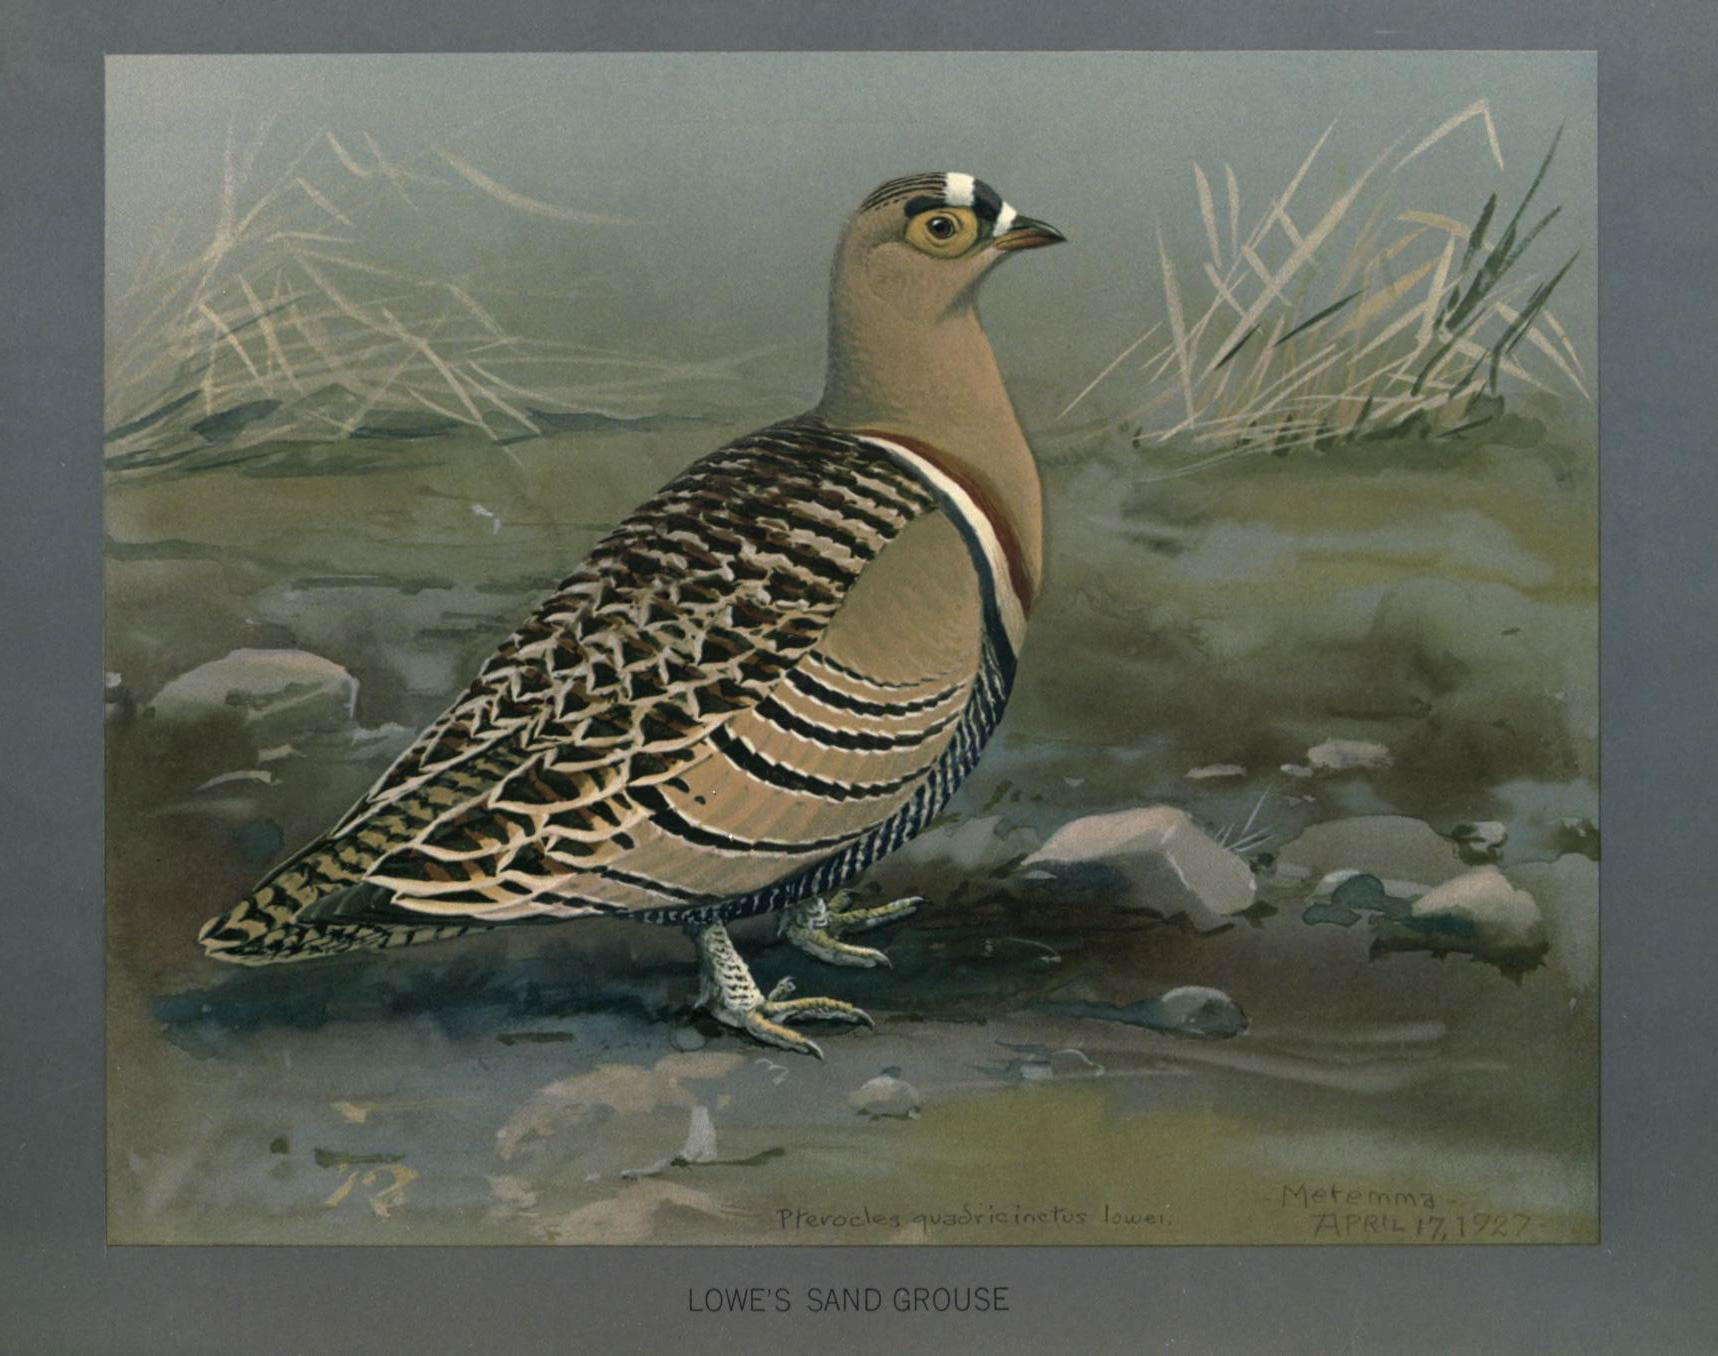 Image of Four-banded Sandgrouse